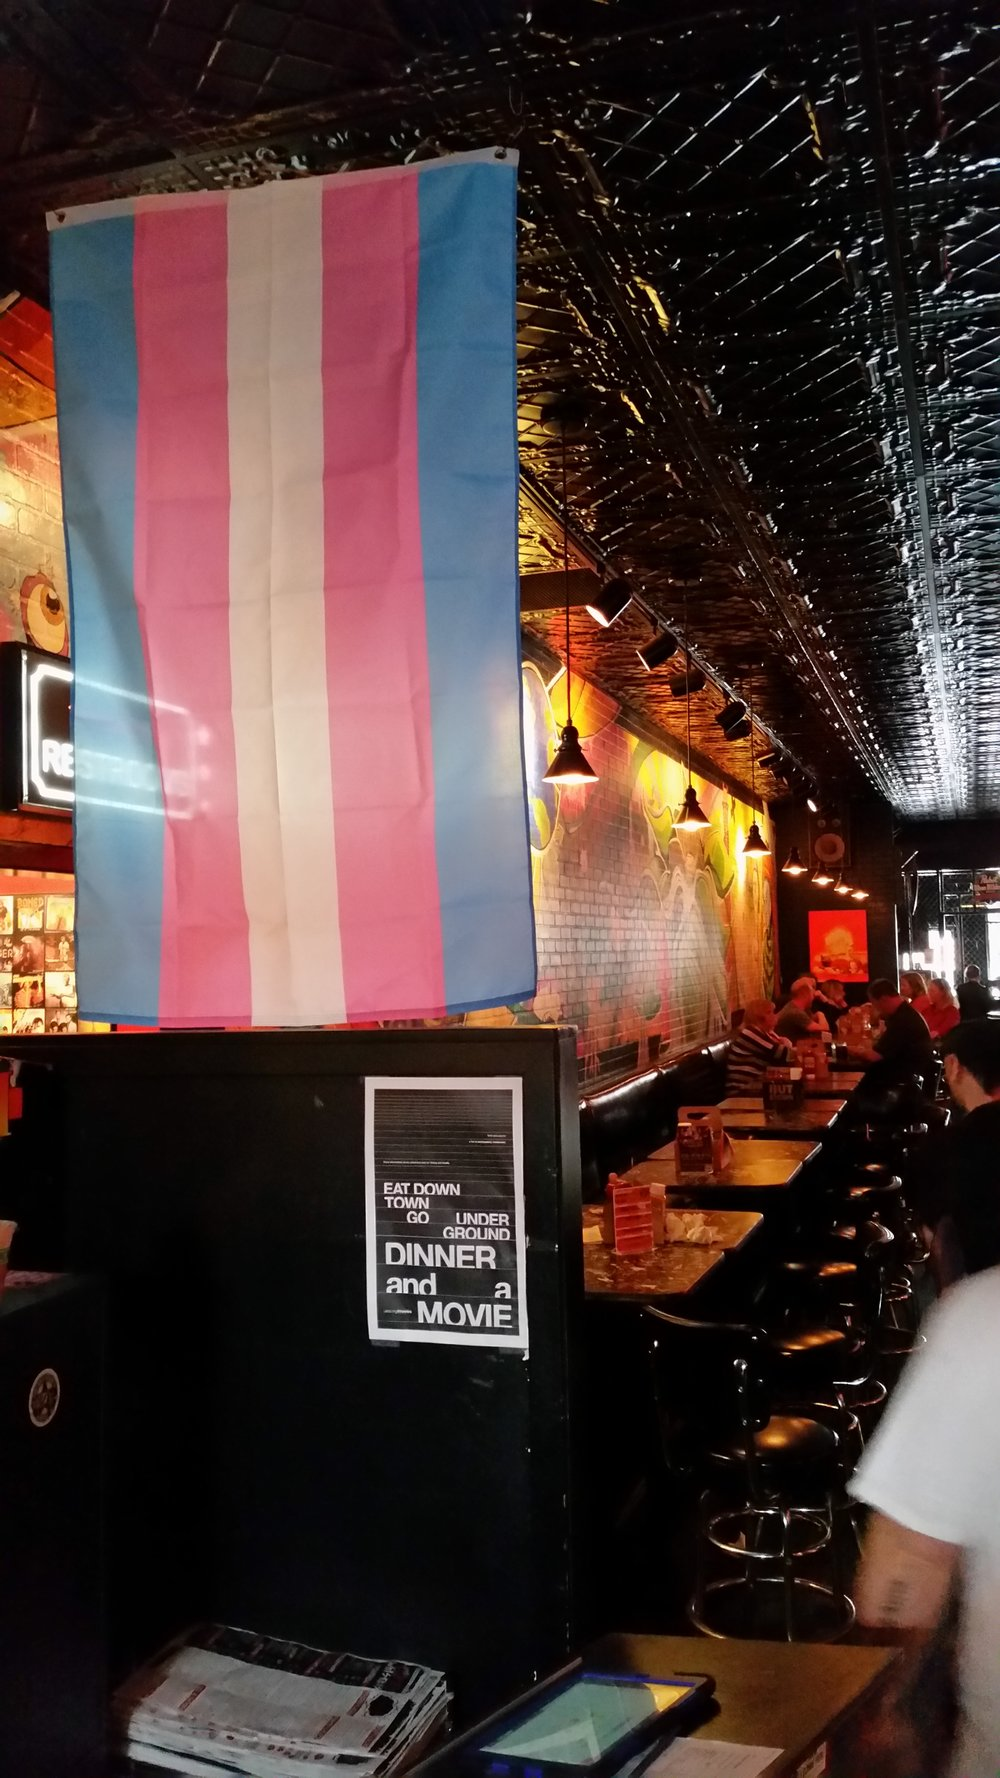 Trans Flag flown @ Stella's Lounge